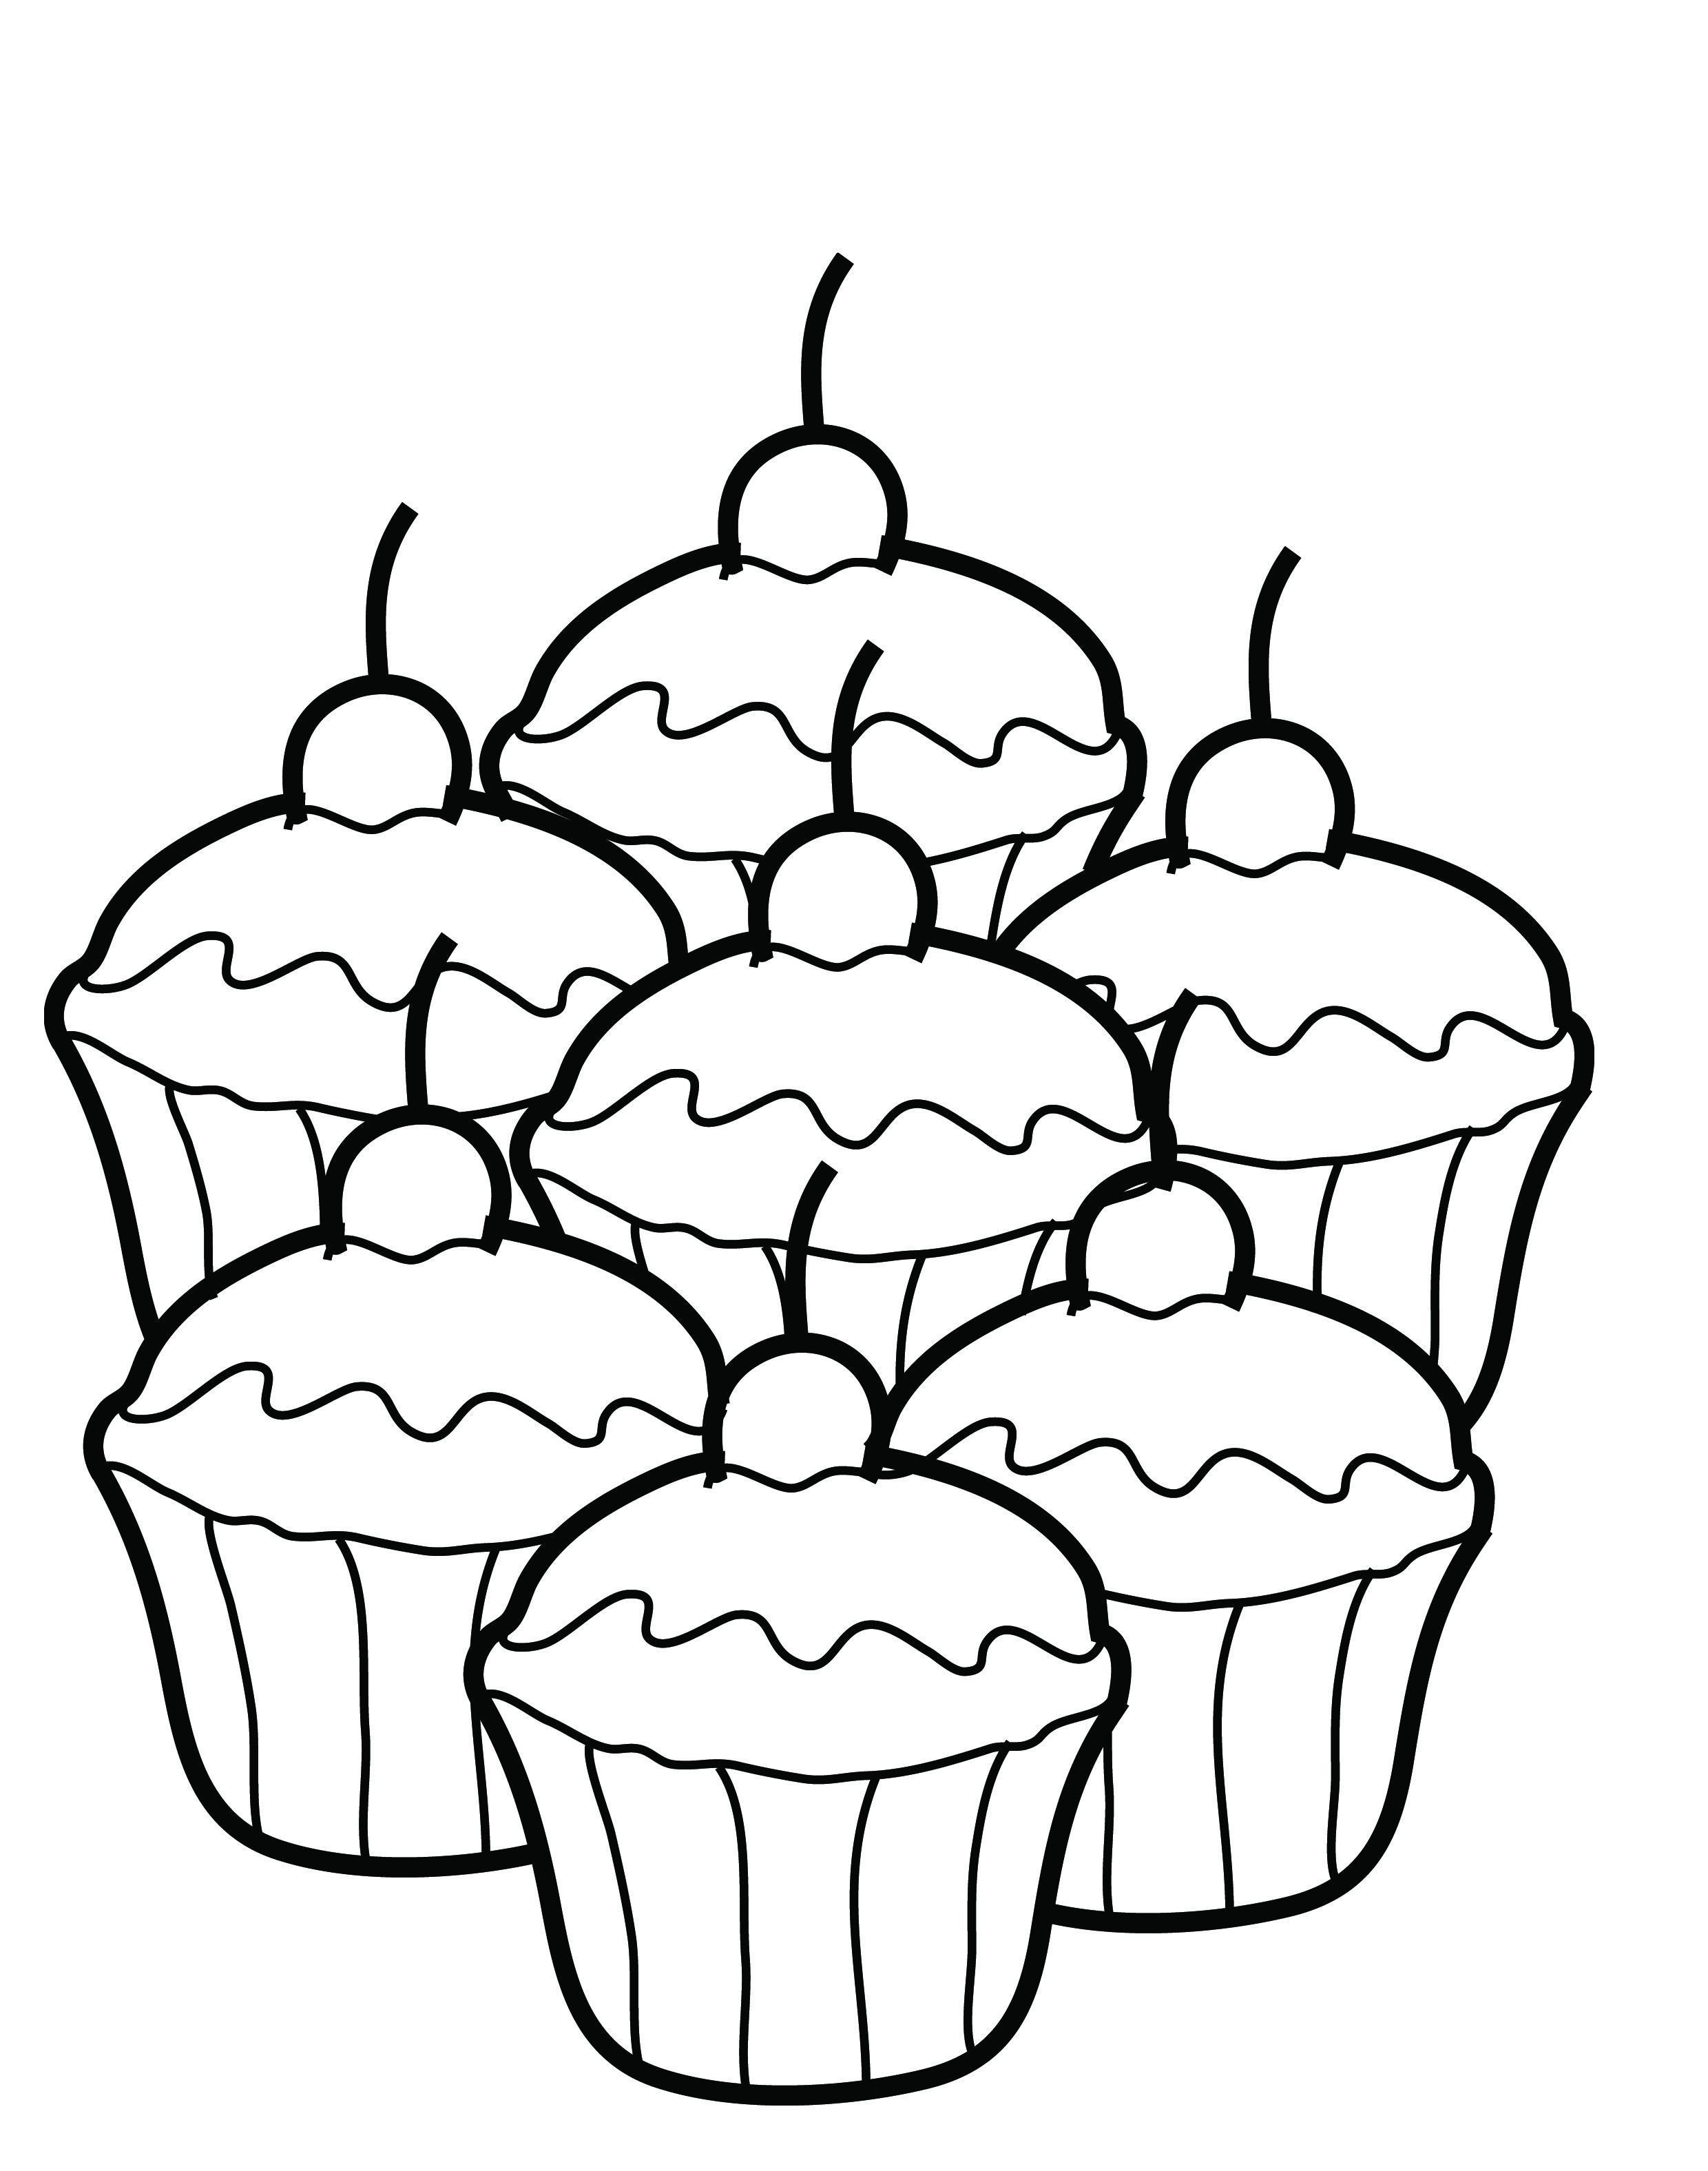 Colouring Images Of Cupcake : Free Printable Cupcake Coloring Pages For Kids